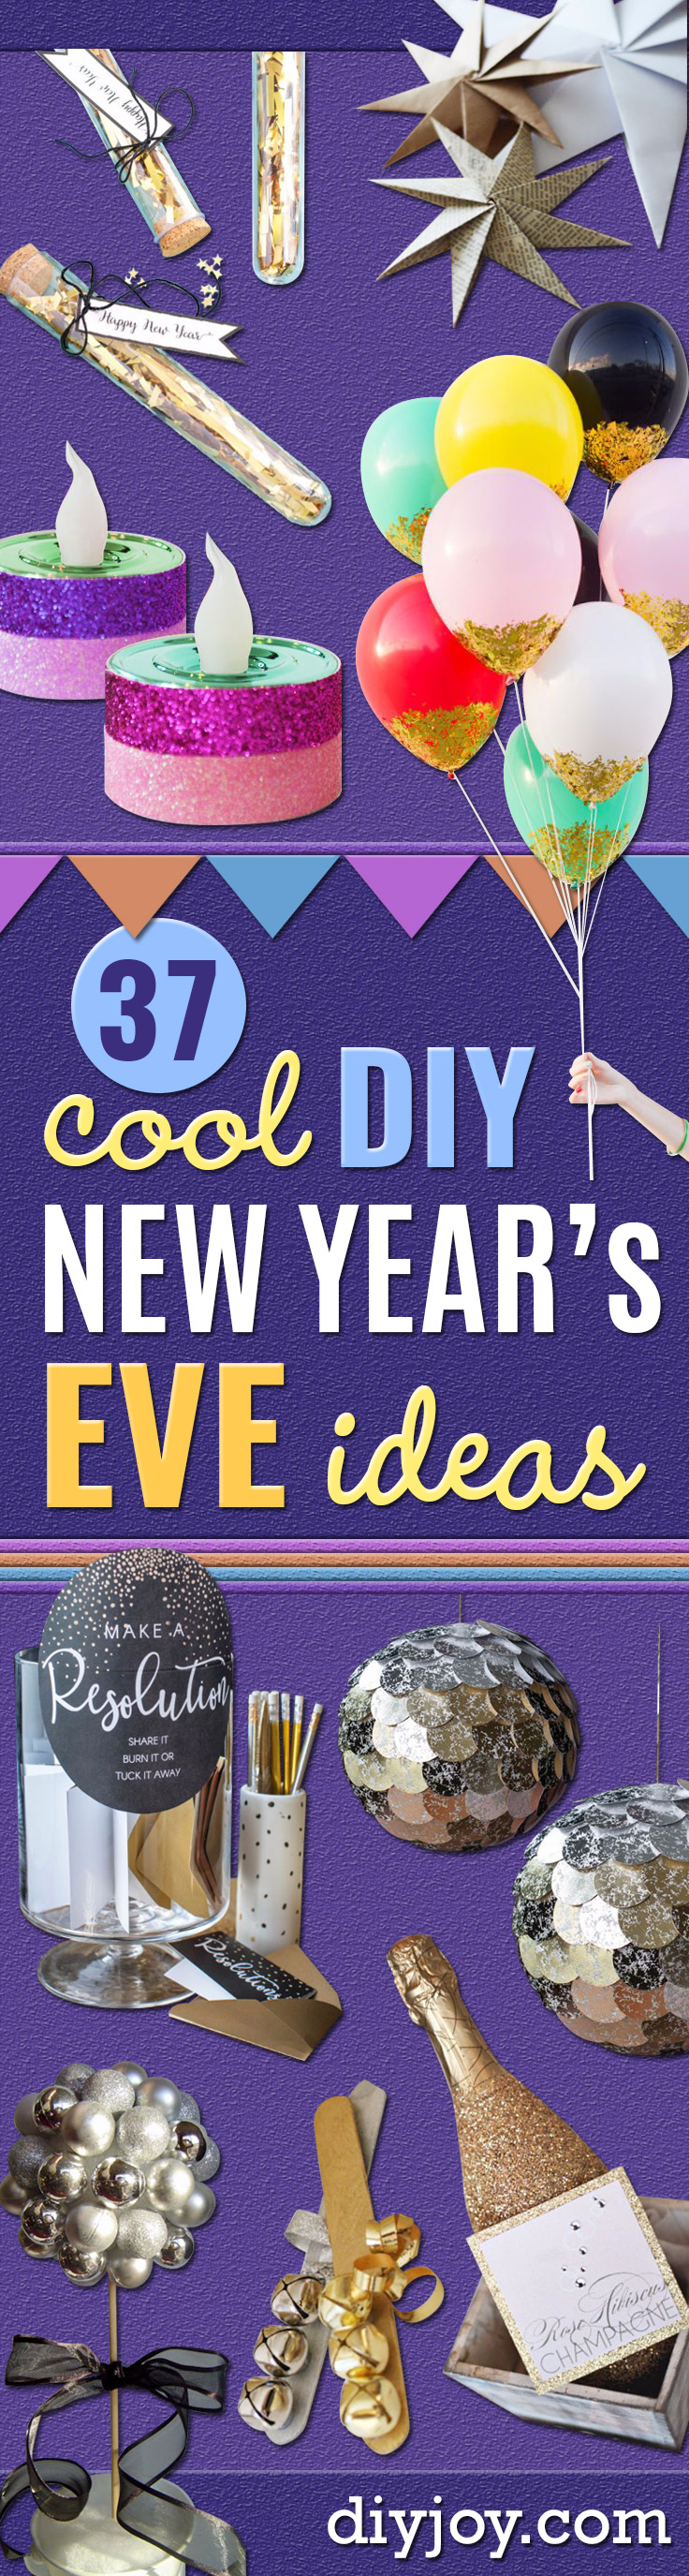 37 Diy New Years Eve Decor Ideas